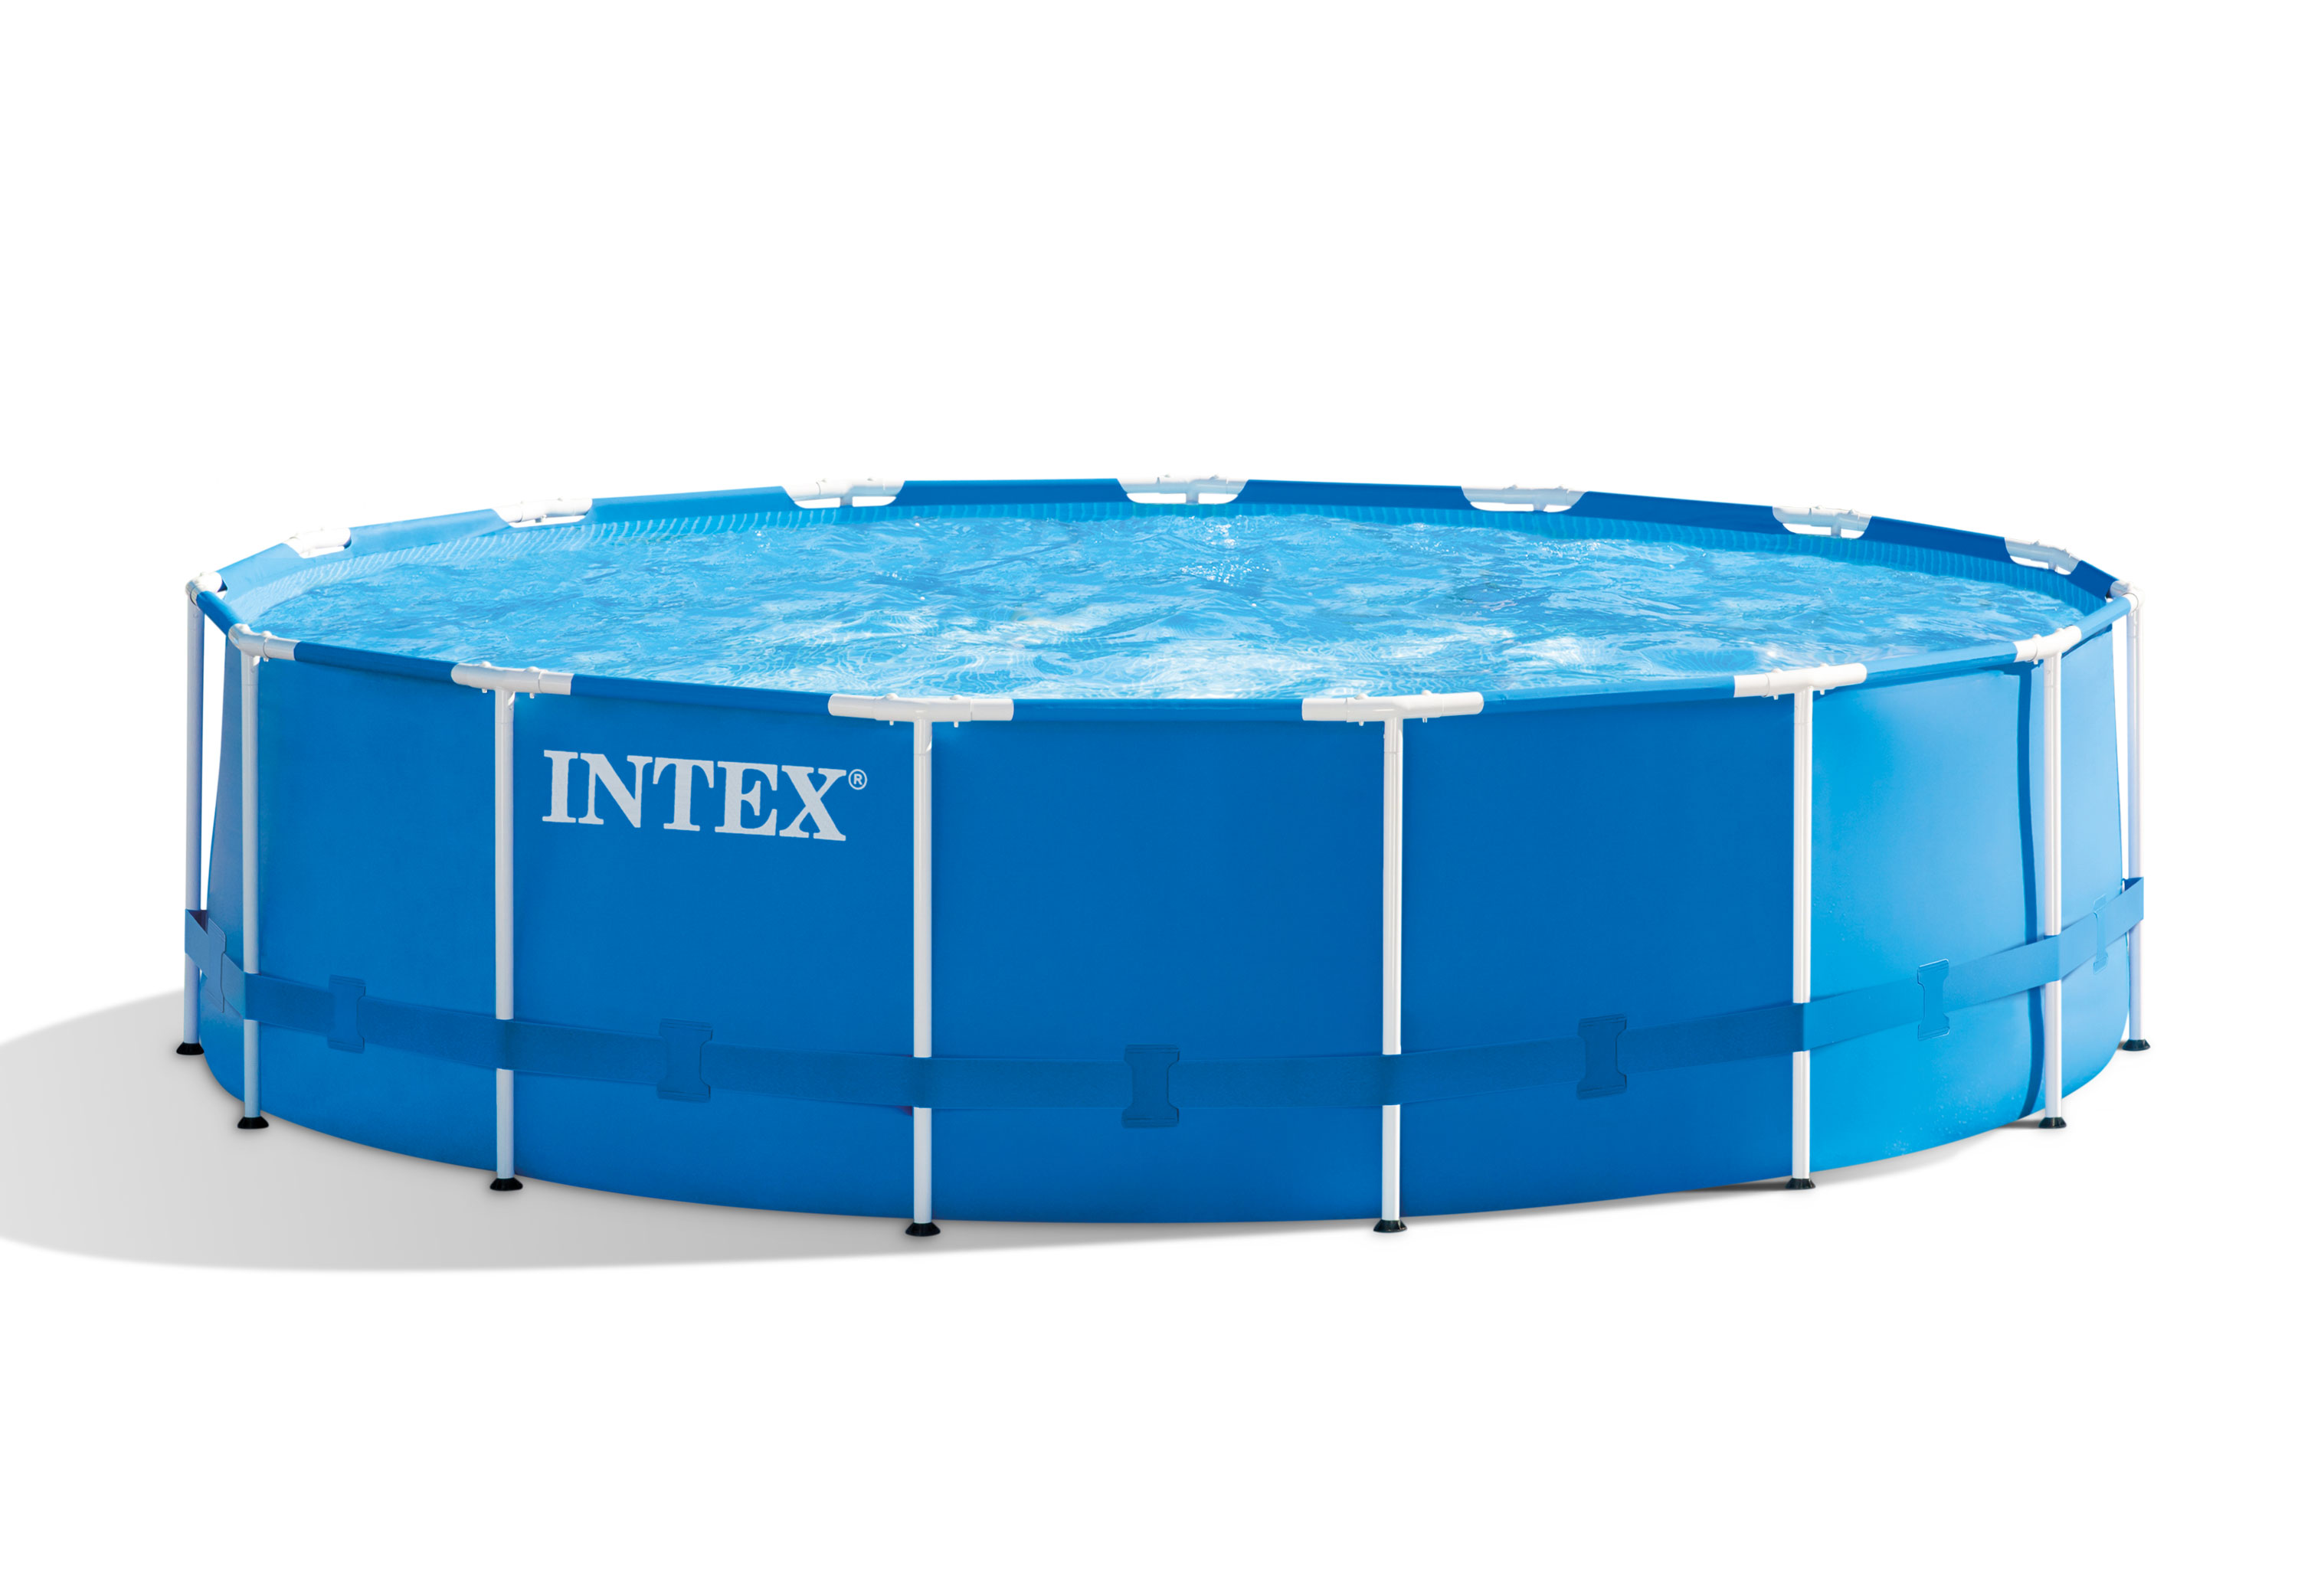 Intex 15 39 x 48 metal frame swimming pool set w pump and for Obi filtersand pool